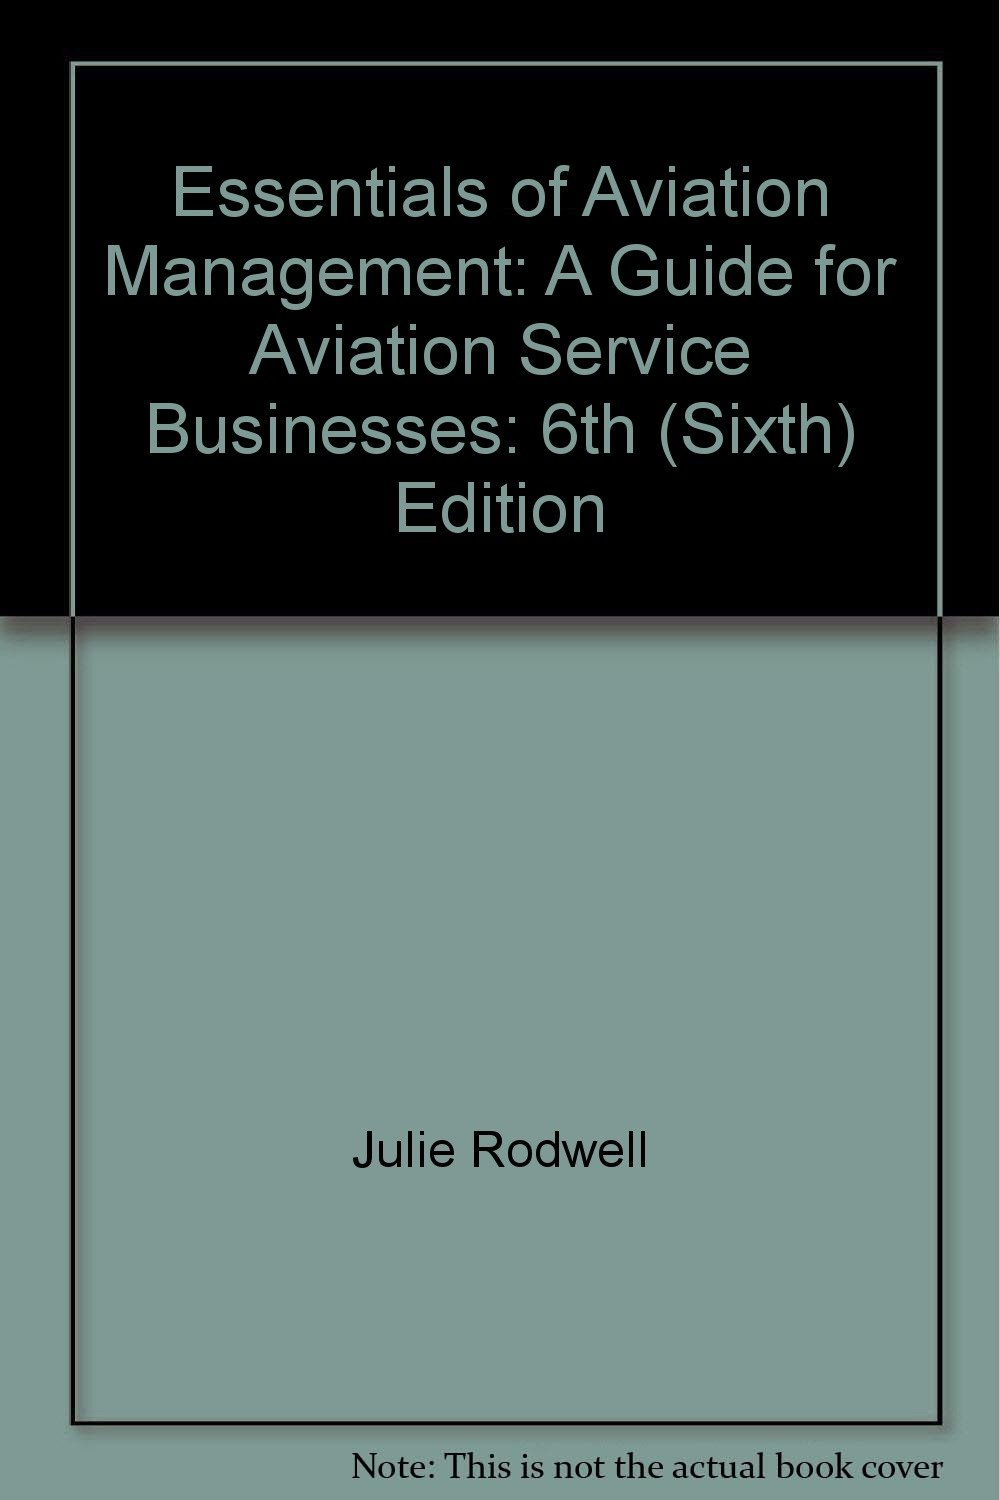 Essentials of Aviation Management: A Guide for Aviation Service Businesses: 6th (Sixth) Edition